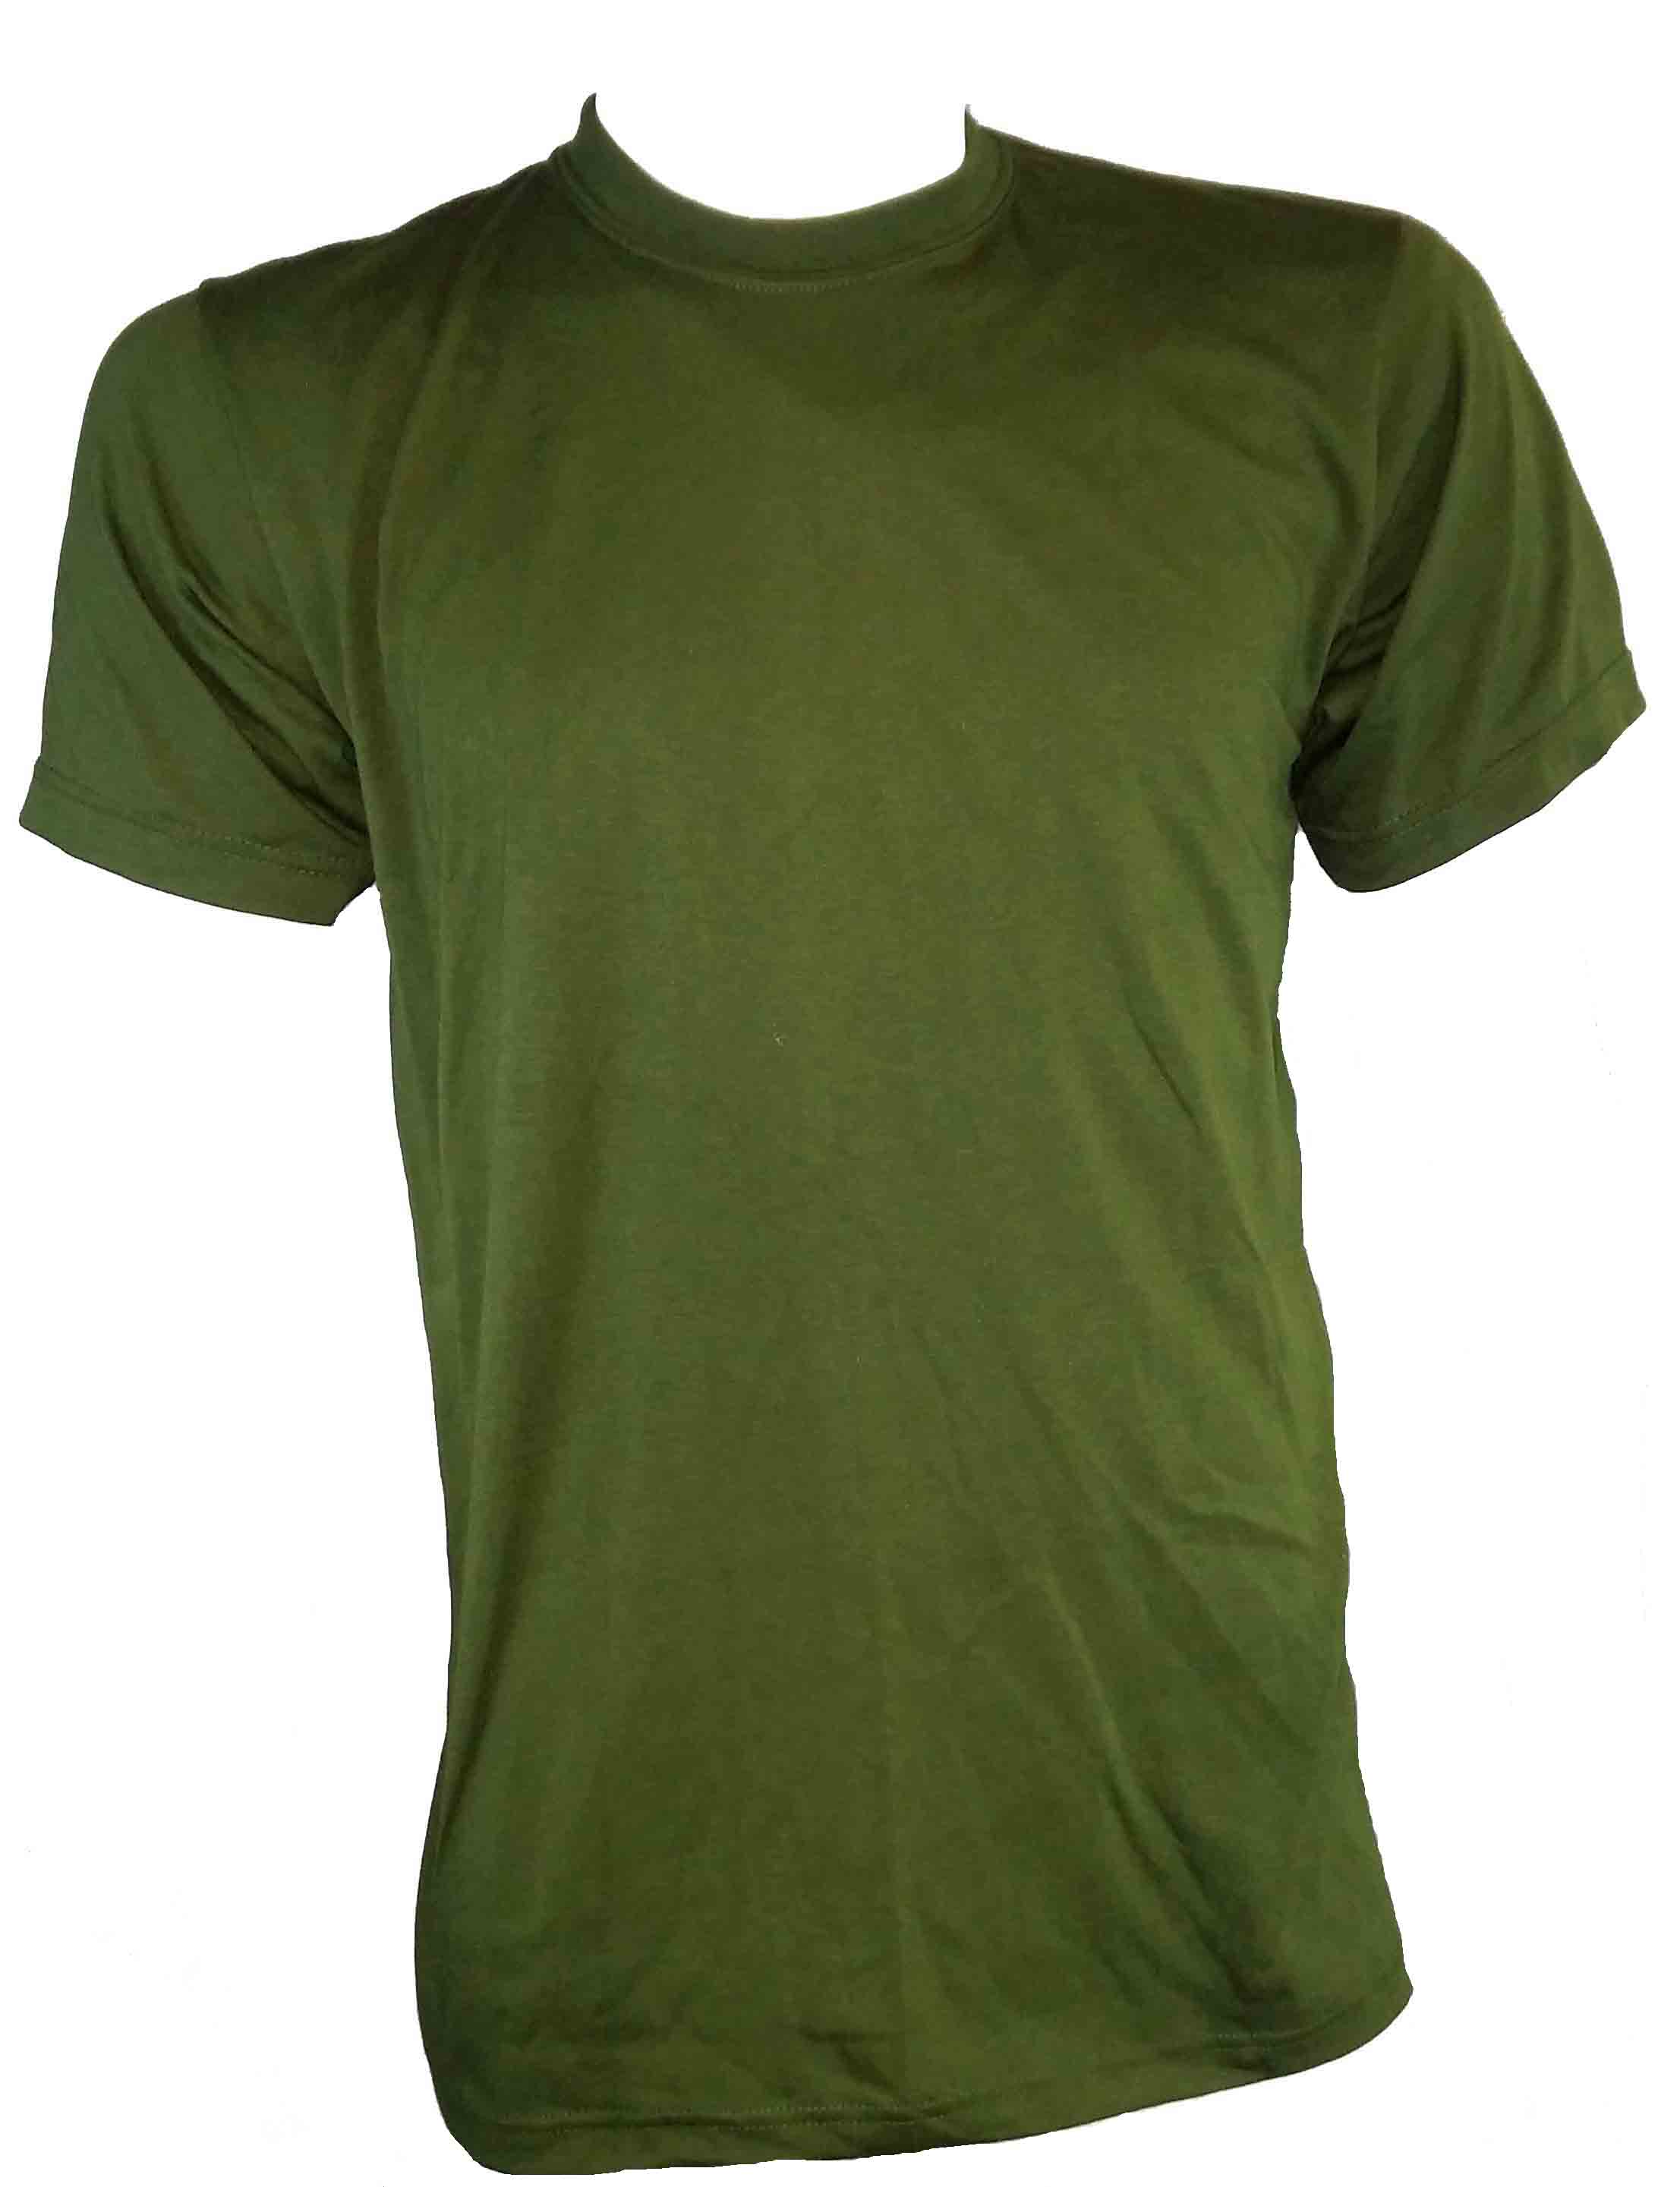 MILITARY STYLE T-SHIRT O/D ROUND NECK